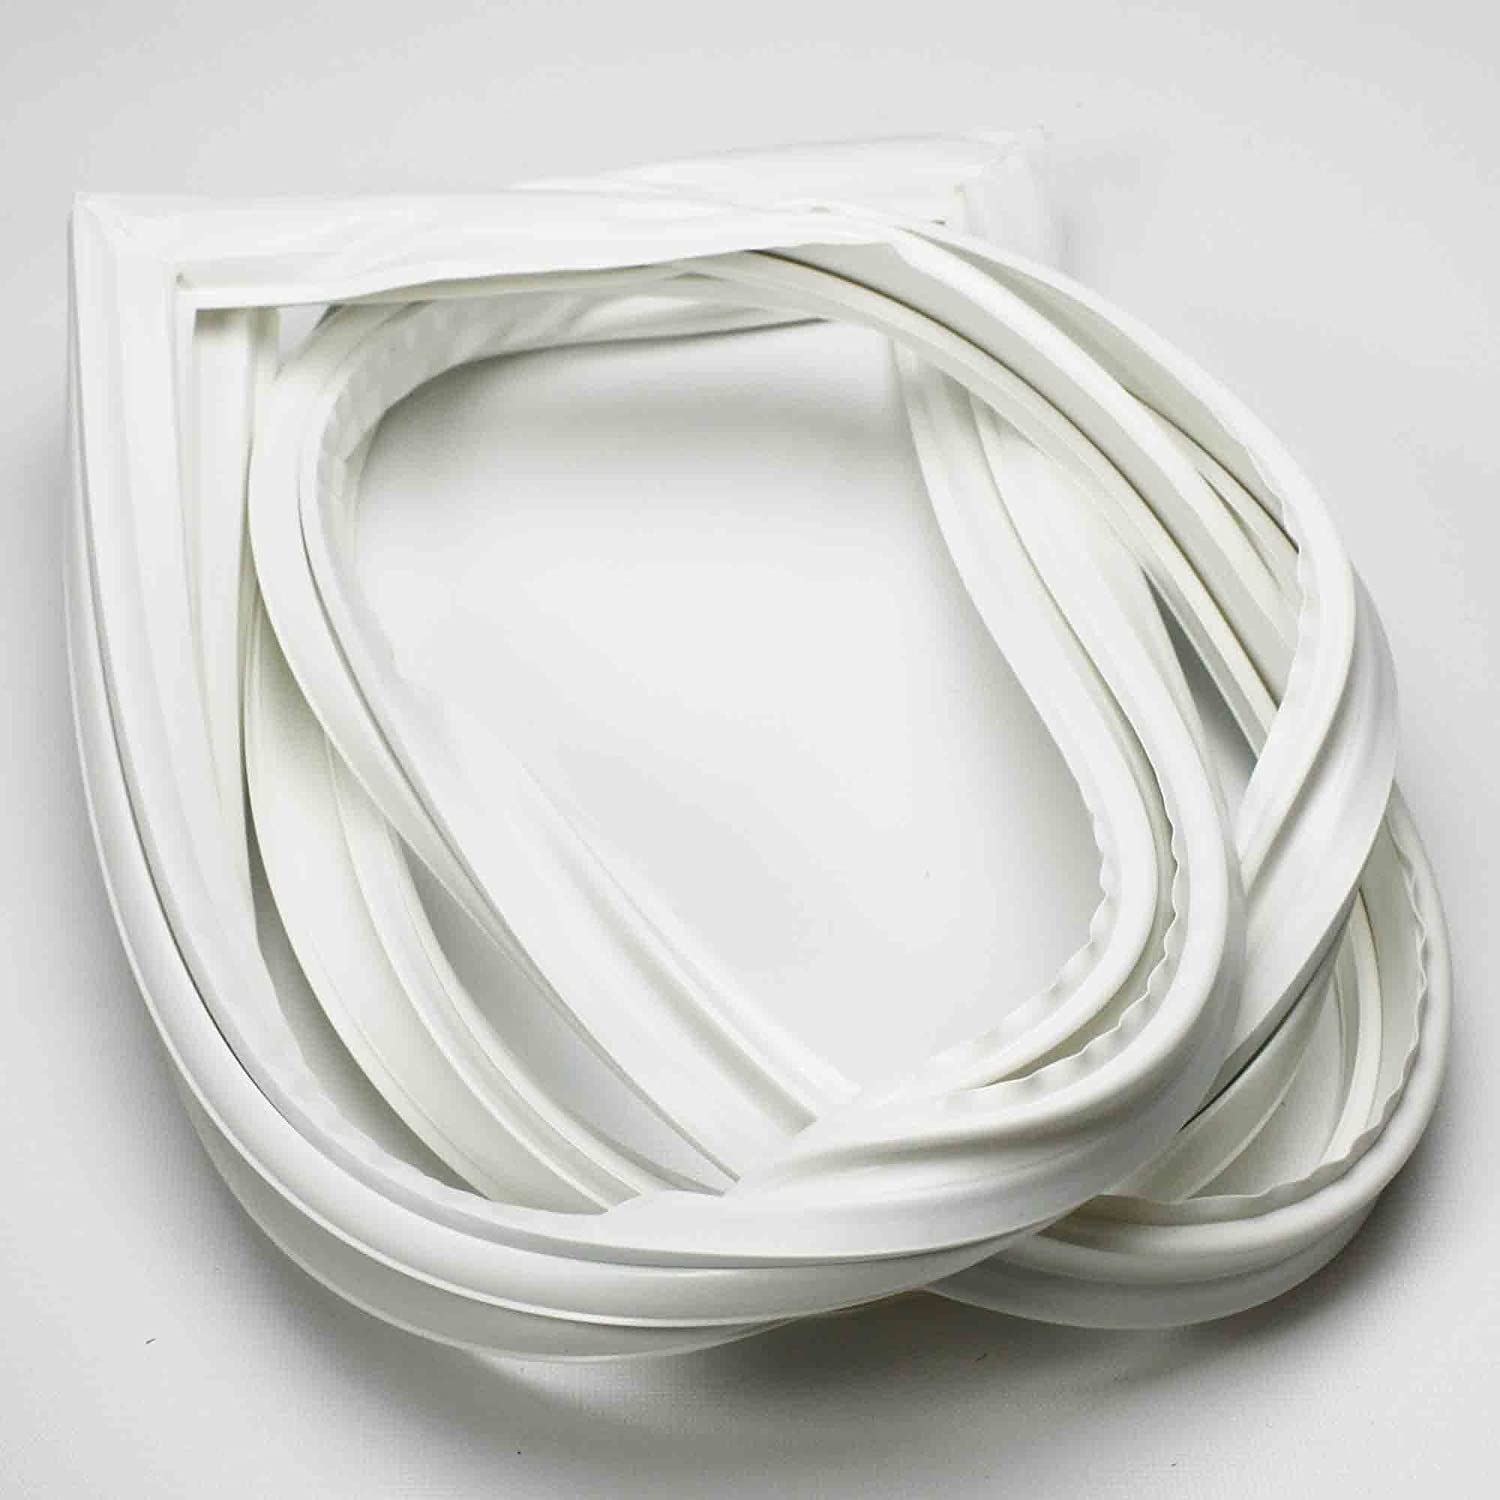 Refrigerator Door Gasket for Amana, Maytag, AP4013372, PS2007702, 12550111Q